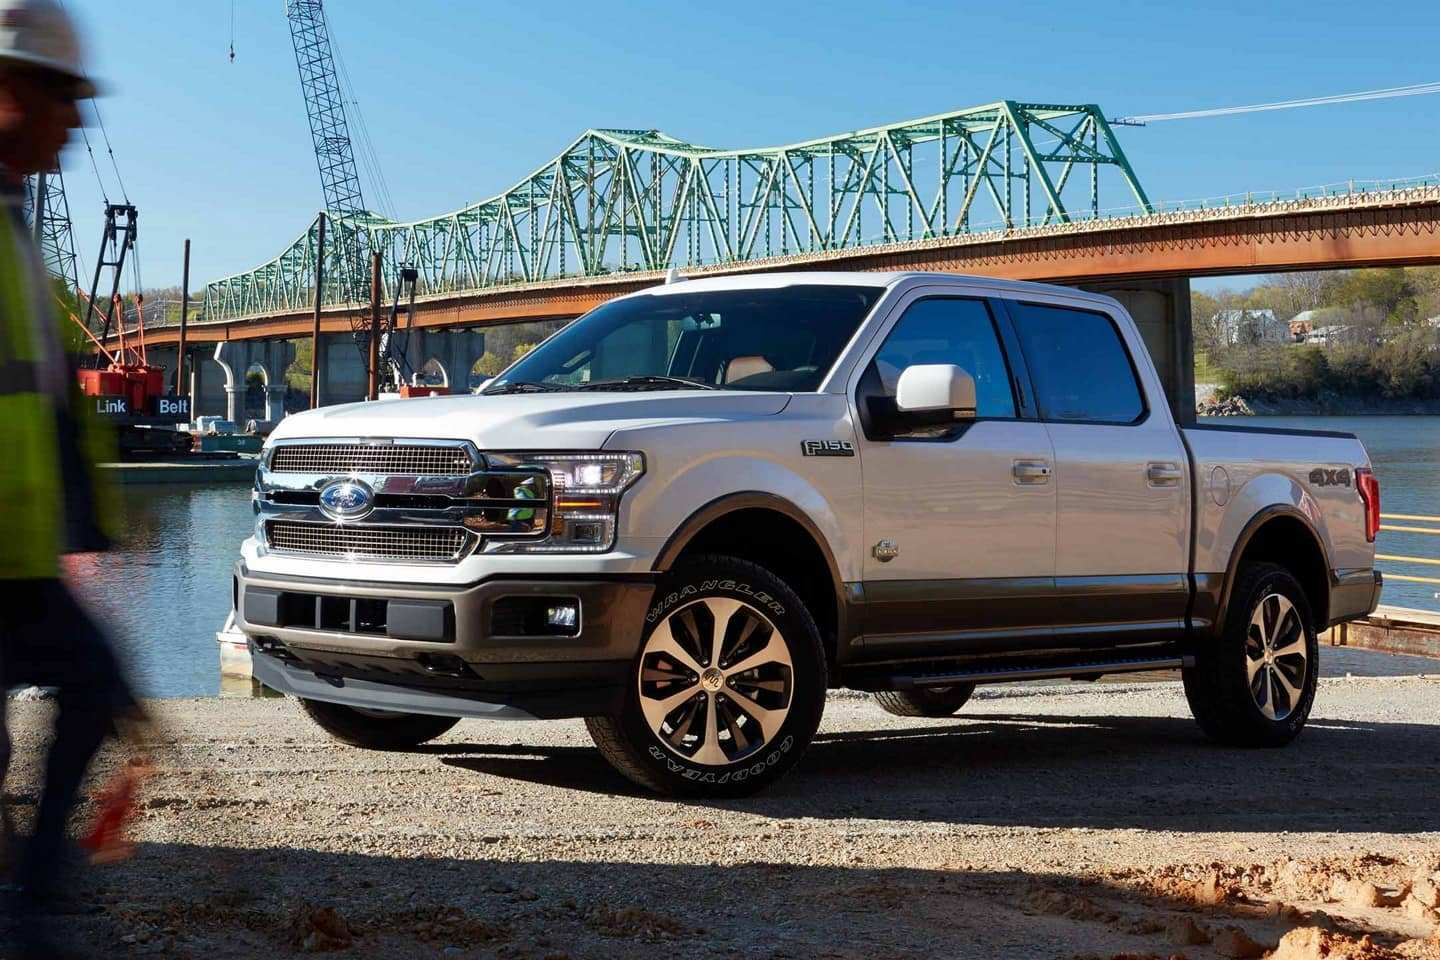 75 Gallery of 2019 Ford F 150 Picture for 2019 Ford F 150